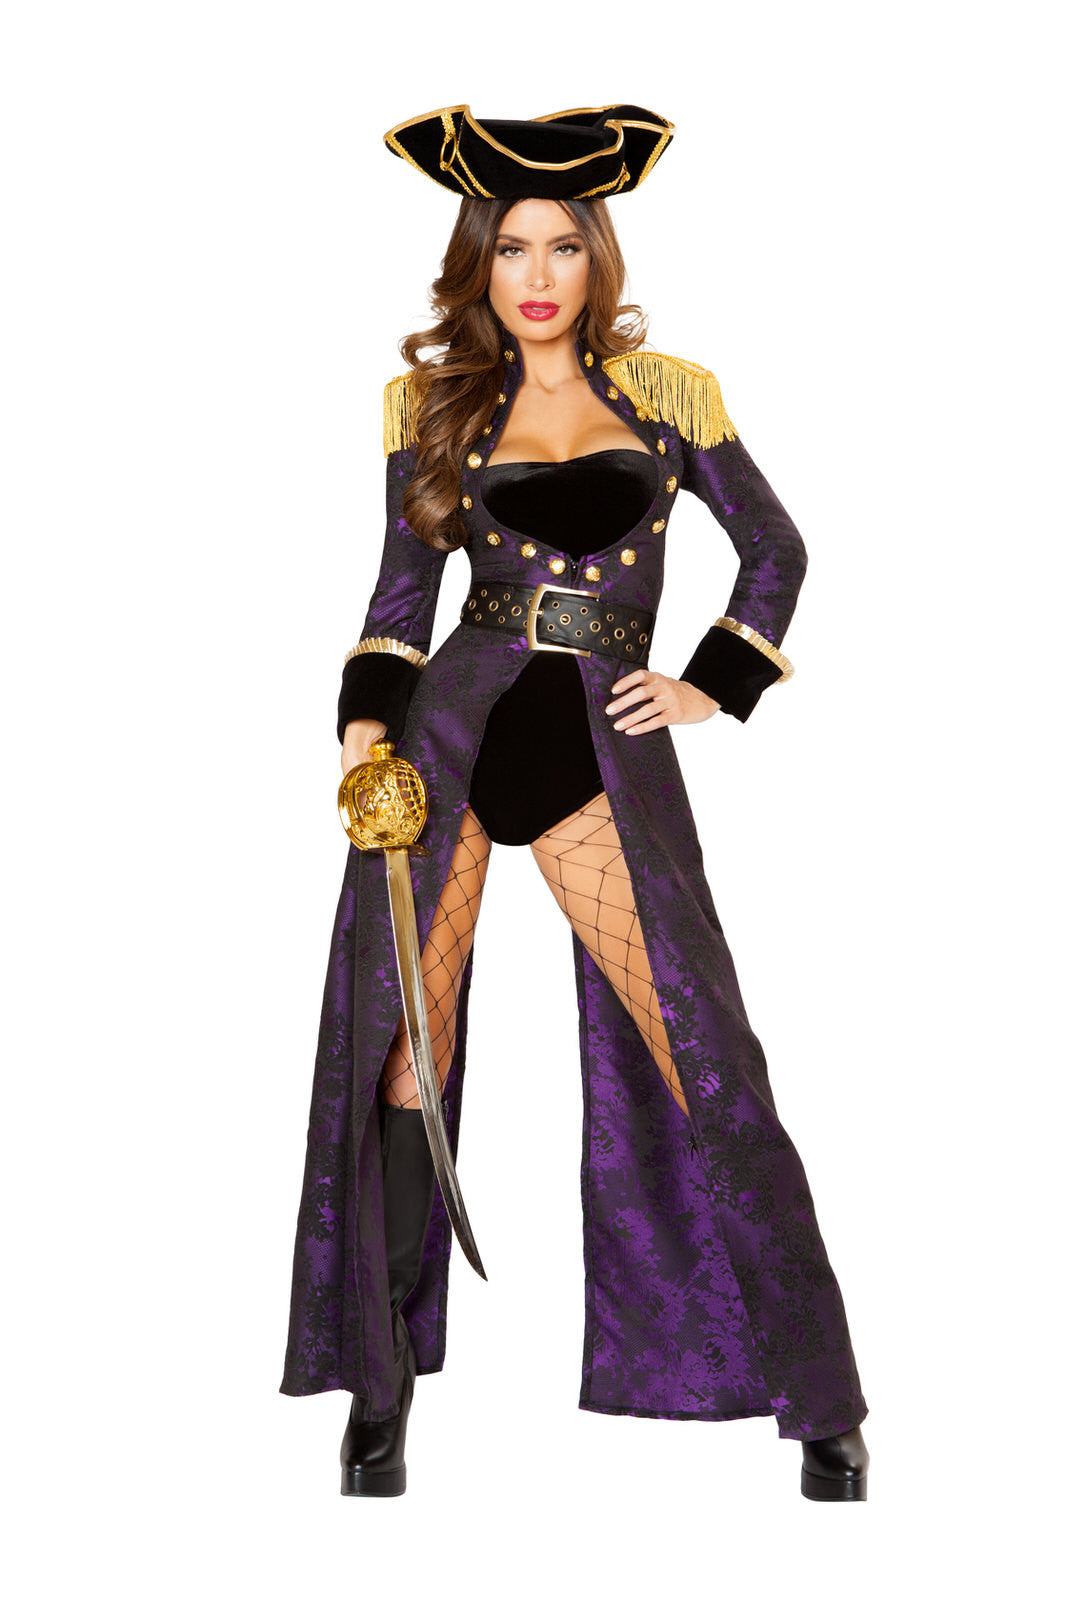 10104 - 4pc Pirate Queen ${description} | Roma Costume and Roma Confidential wholesale manufacturer of Women Apparel bulk world wide wholesale and world wide drop ship services for Adult Halloween Costumes, Sexy and Elegant Lingerie, Rave Clothing, Club wear, and Christmas Costumes. Costumes, Roma Costume, Inc., Roma Costume, Roma Confidential, Wholesale clothing, drop ship, drop ship service, Wholesale Lingerie, Wholesale Adult Halloween Costumes, Rave Clothing, EDM Clothing, Festival Wear, Christmas Costumes, Clubwear, Club wear.